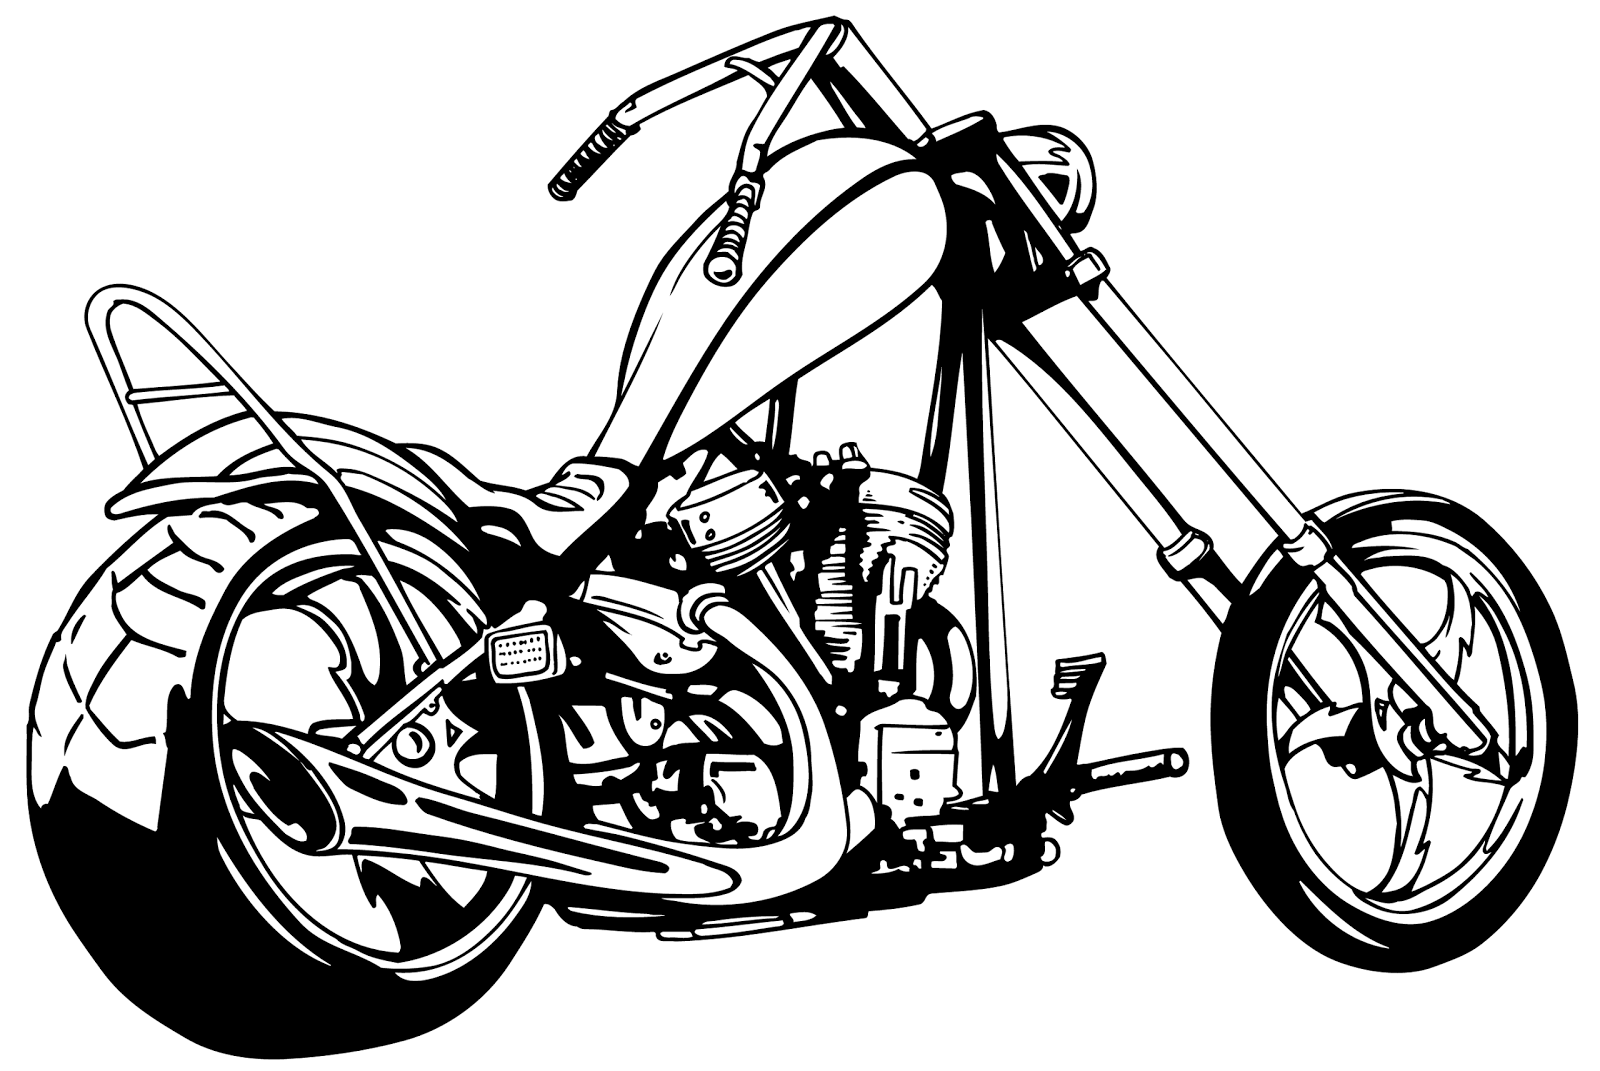 Harley clipart black and white clipart library stock Harley clipart black and white - ClipartFest clipart library stock